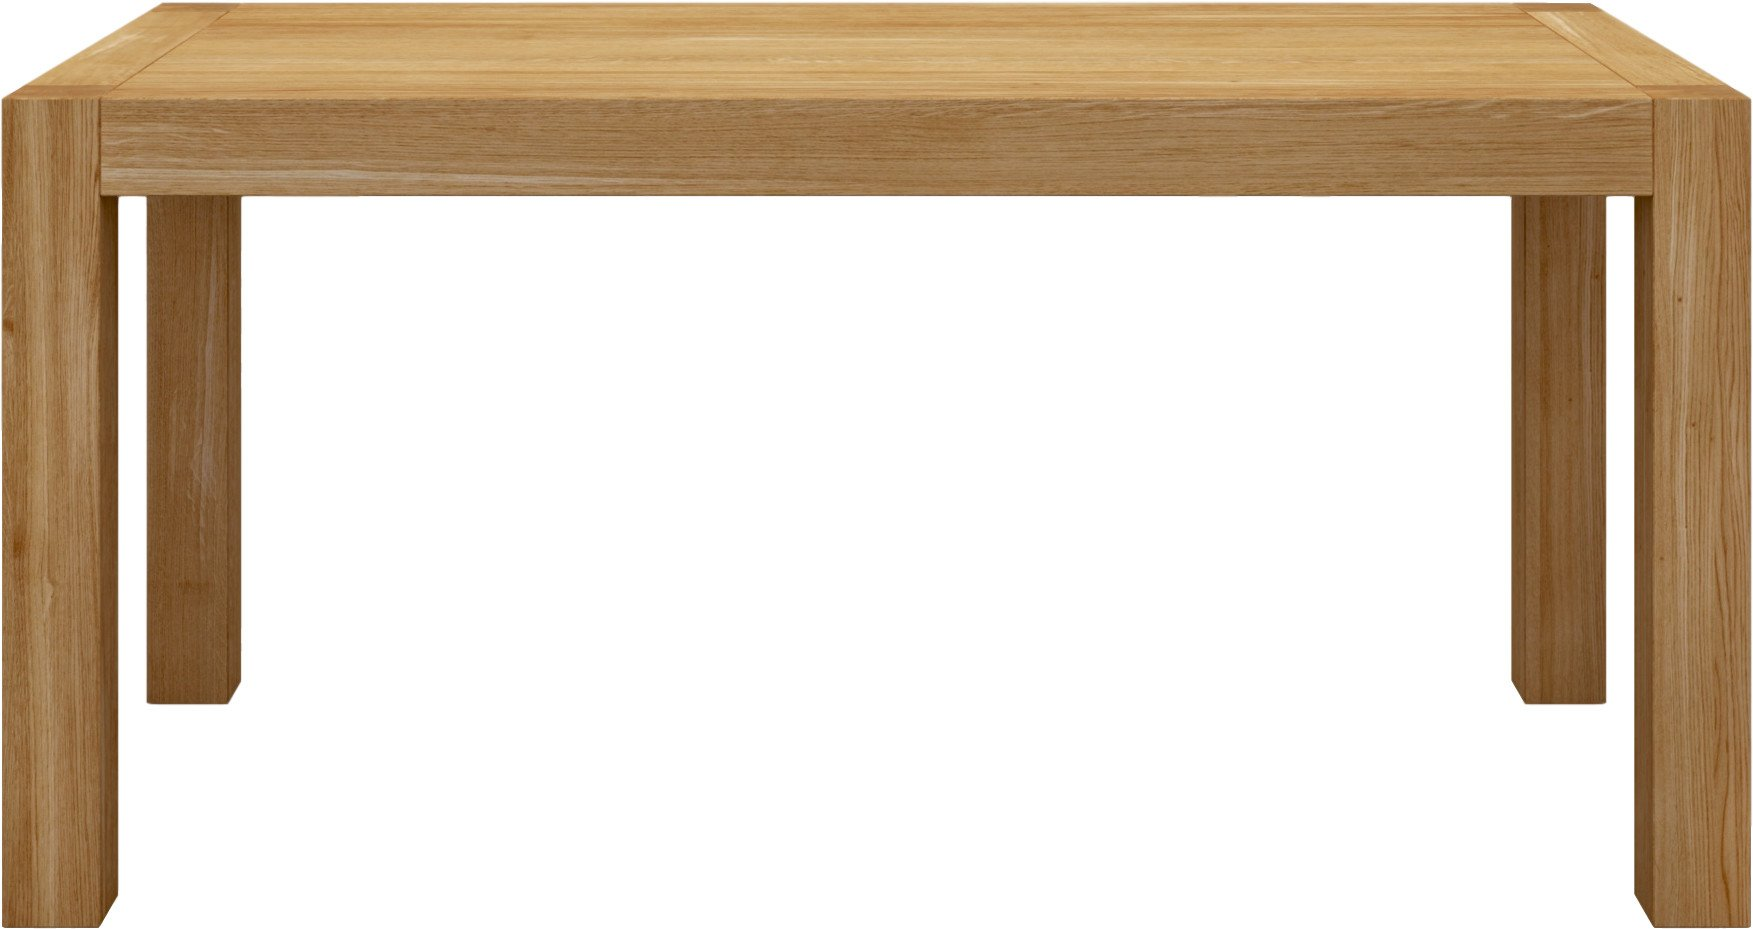 Blox Table Natural 160x80, Miloni